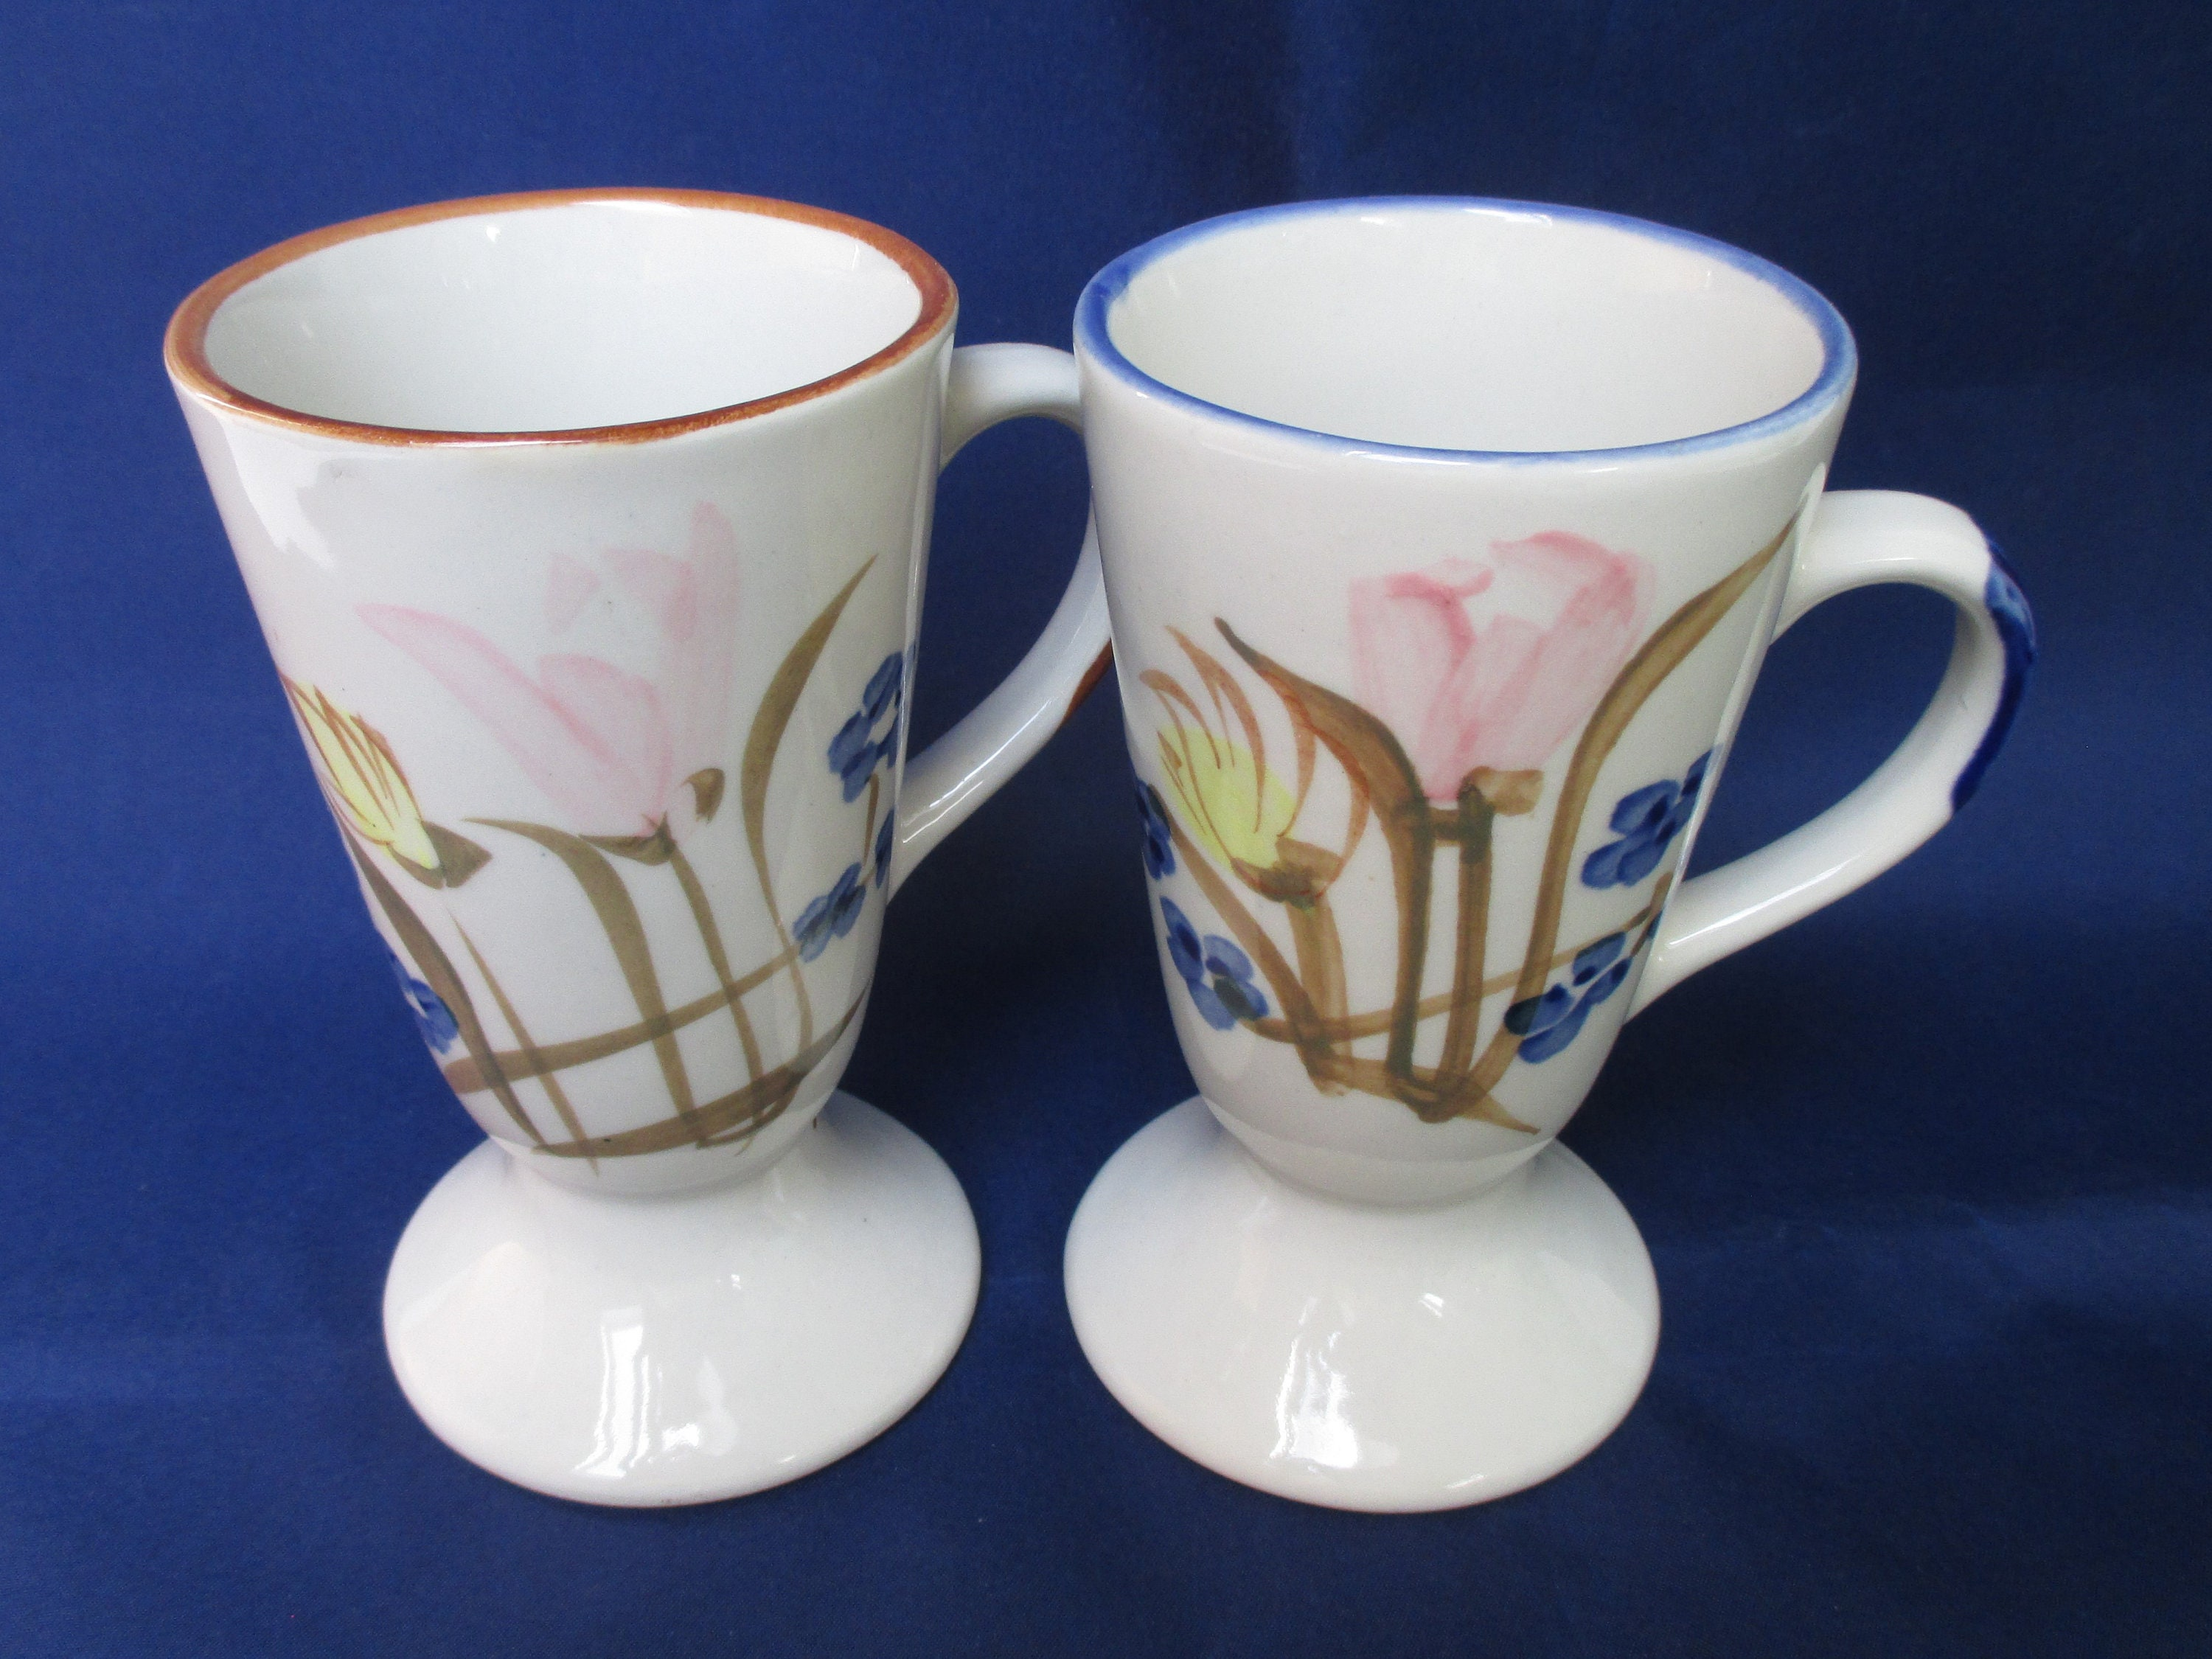 Vintage Tea Brown Lover Gift Footed Set Cups 20 Blue Couples Coffee Kitchen Ceramic His Her Under Mug Irish Mugs Mom QdCtshxrB